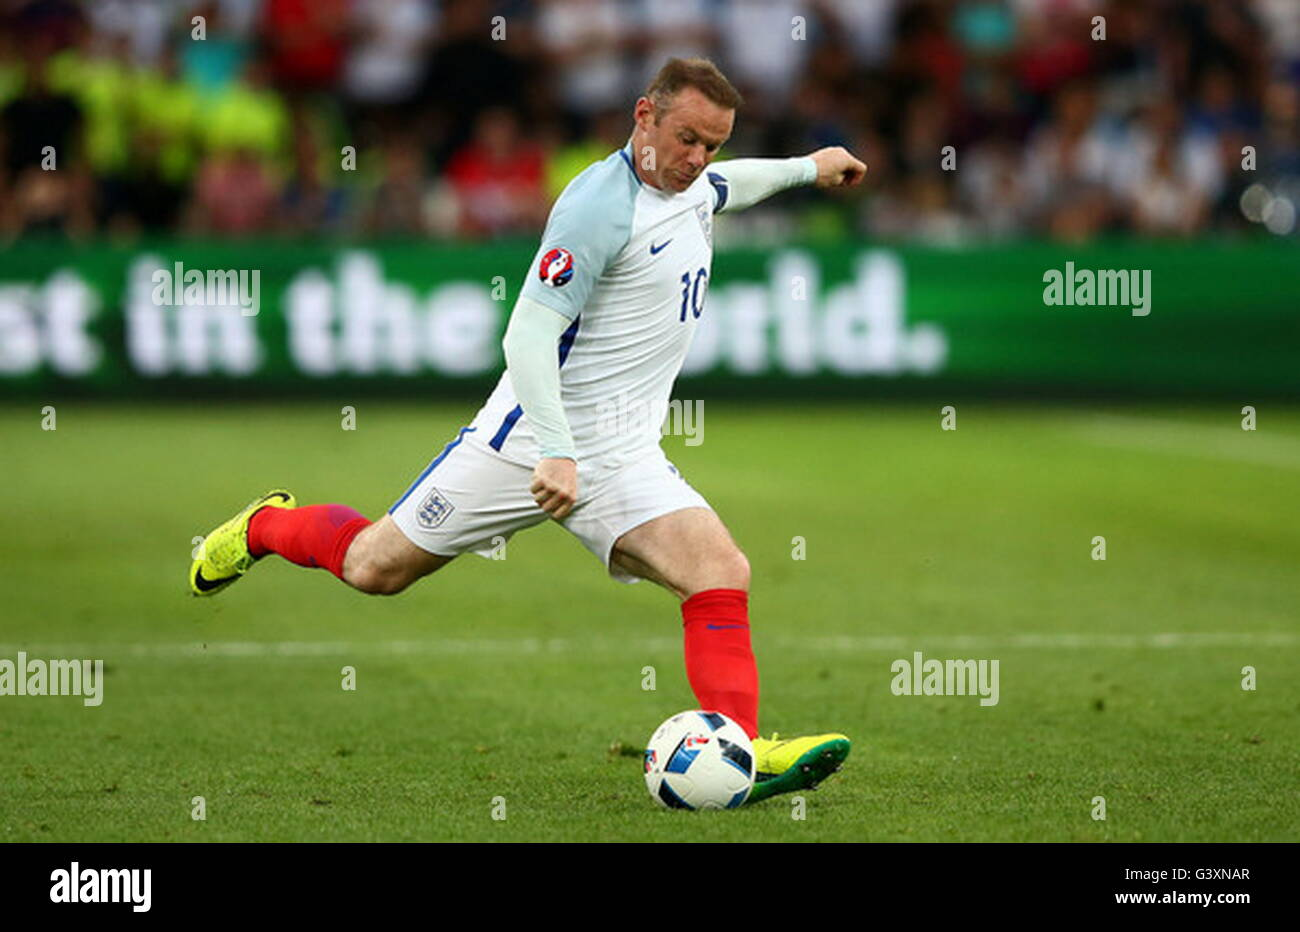 Marseille, France, June 11, 2016: Wayne Rooney during the match of the Euro Group B, England - Russia stade velodrome - Stock Image